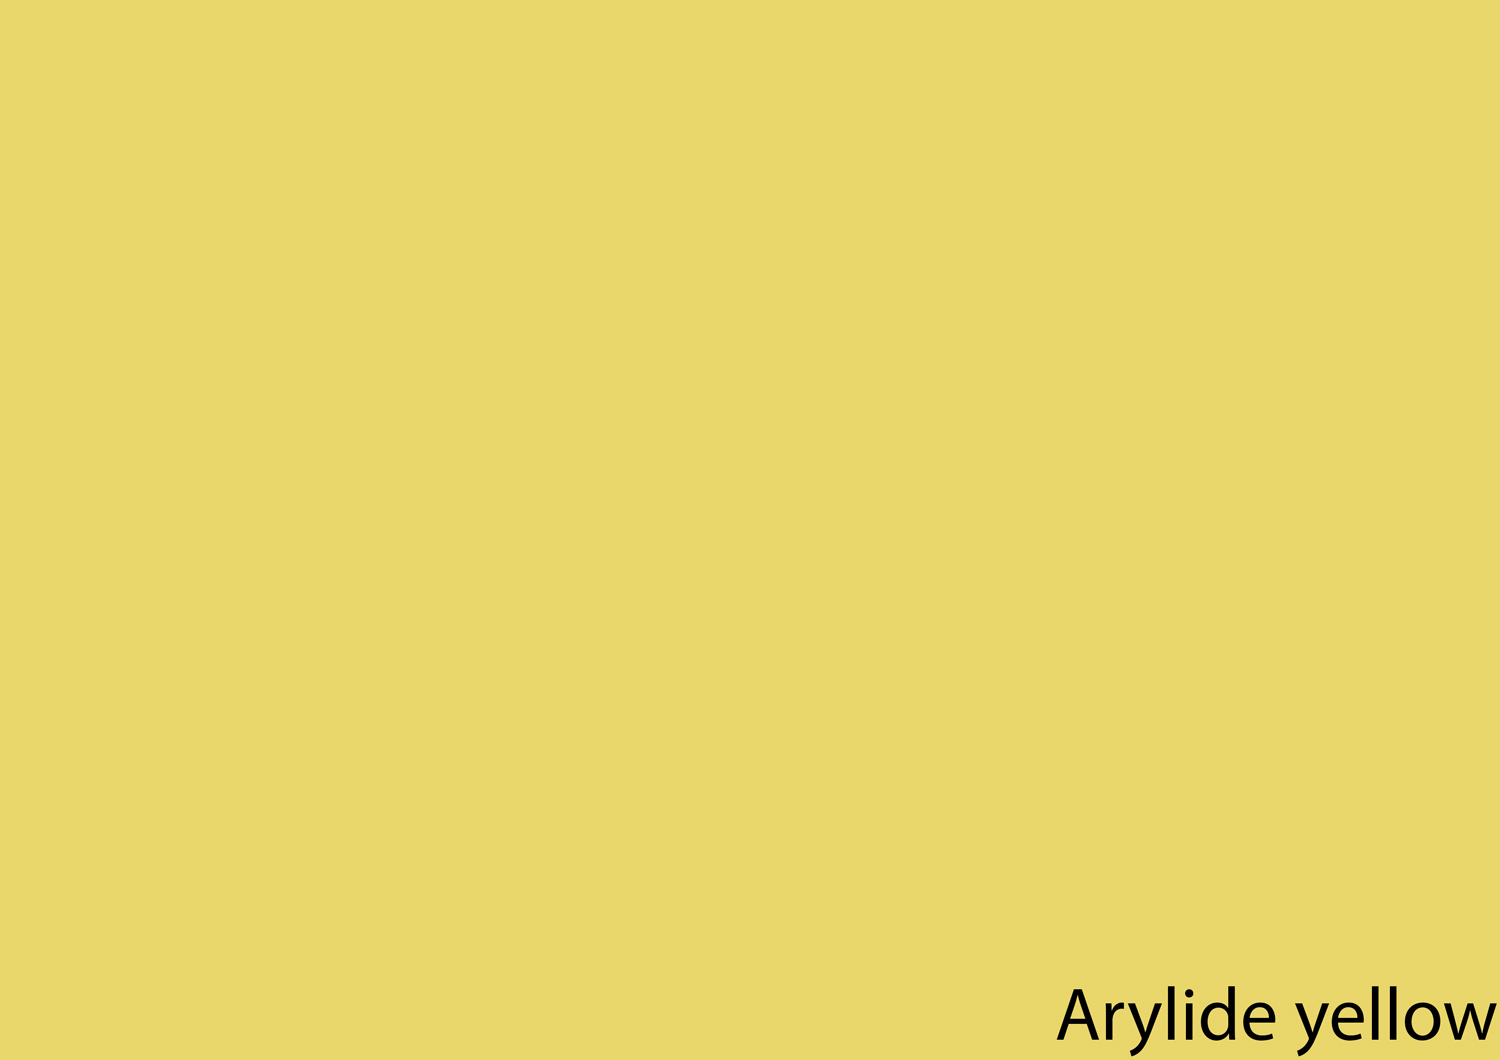 Mastering Color Series - The Psychology and Evolution of the Color YELLOW and its use in Photography